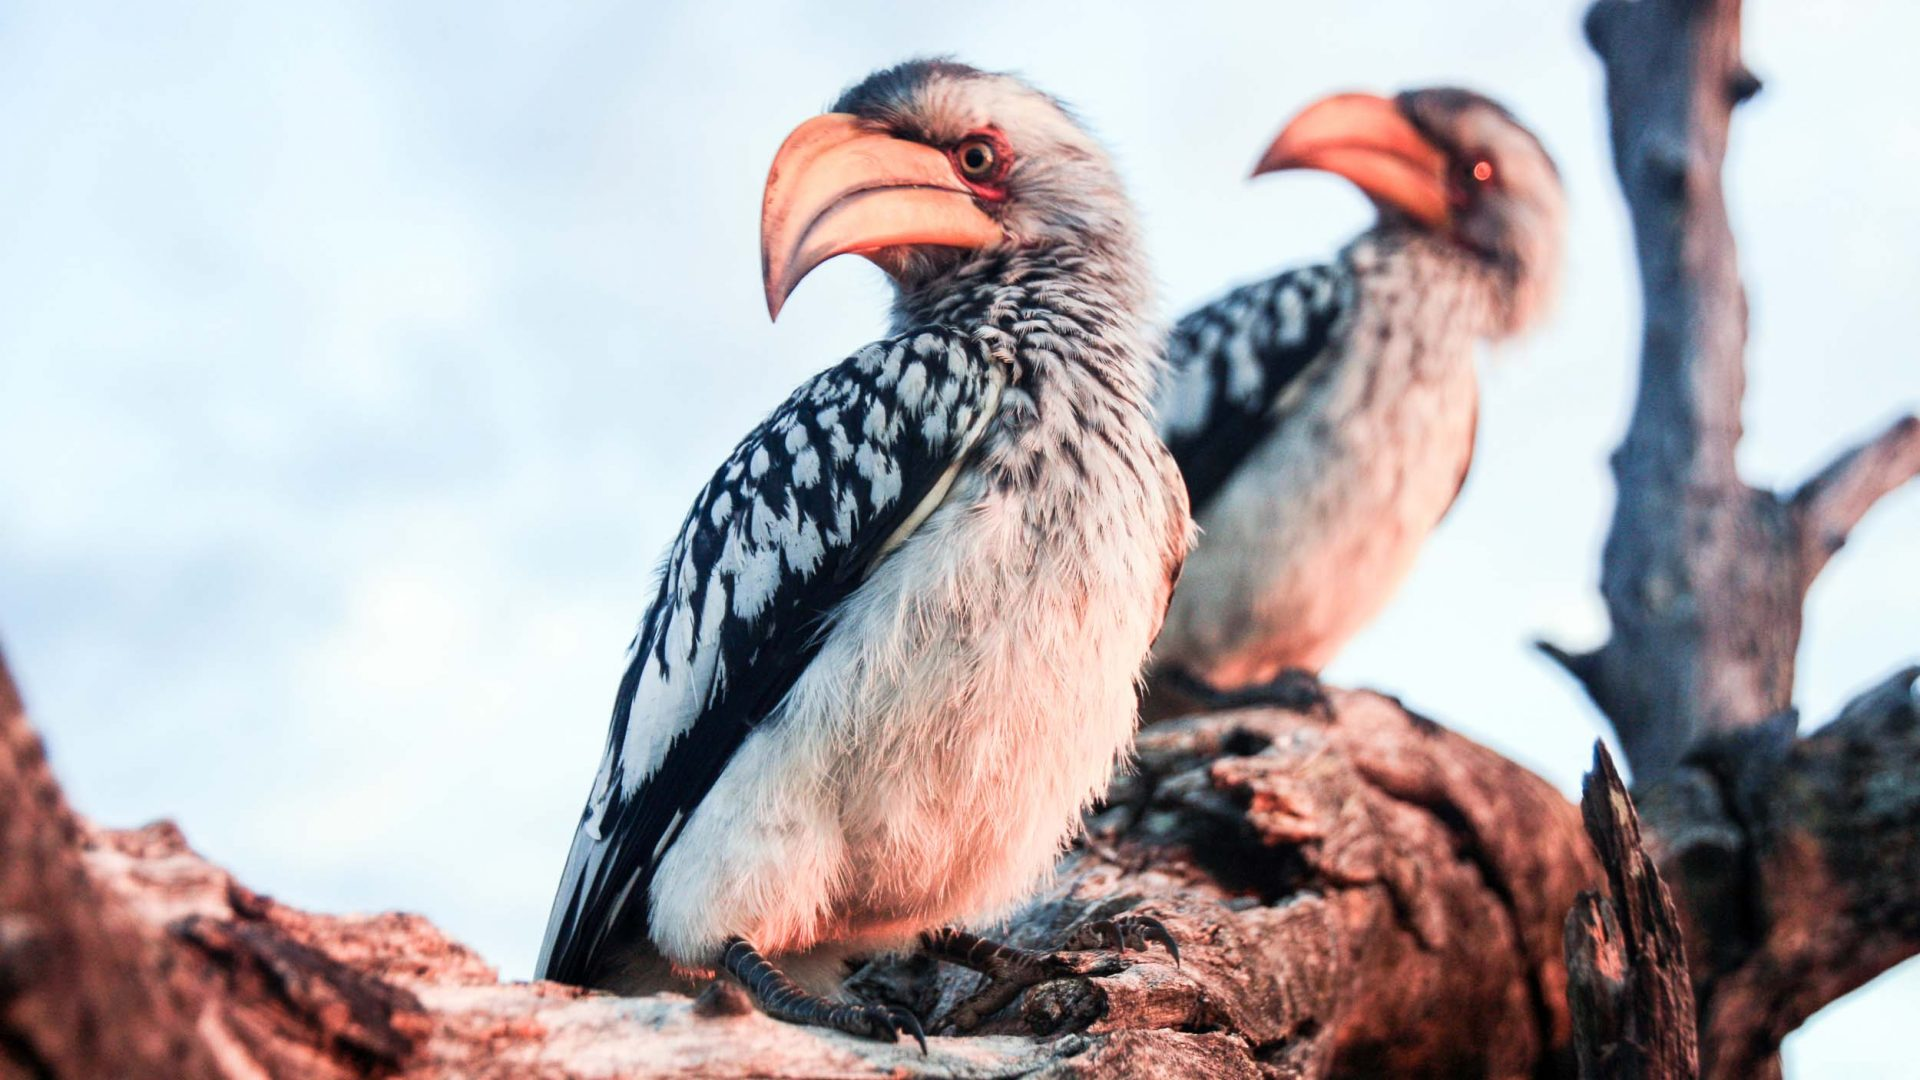 Yellow-billed hornbills in Hwange National Park, Zimbabwe.